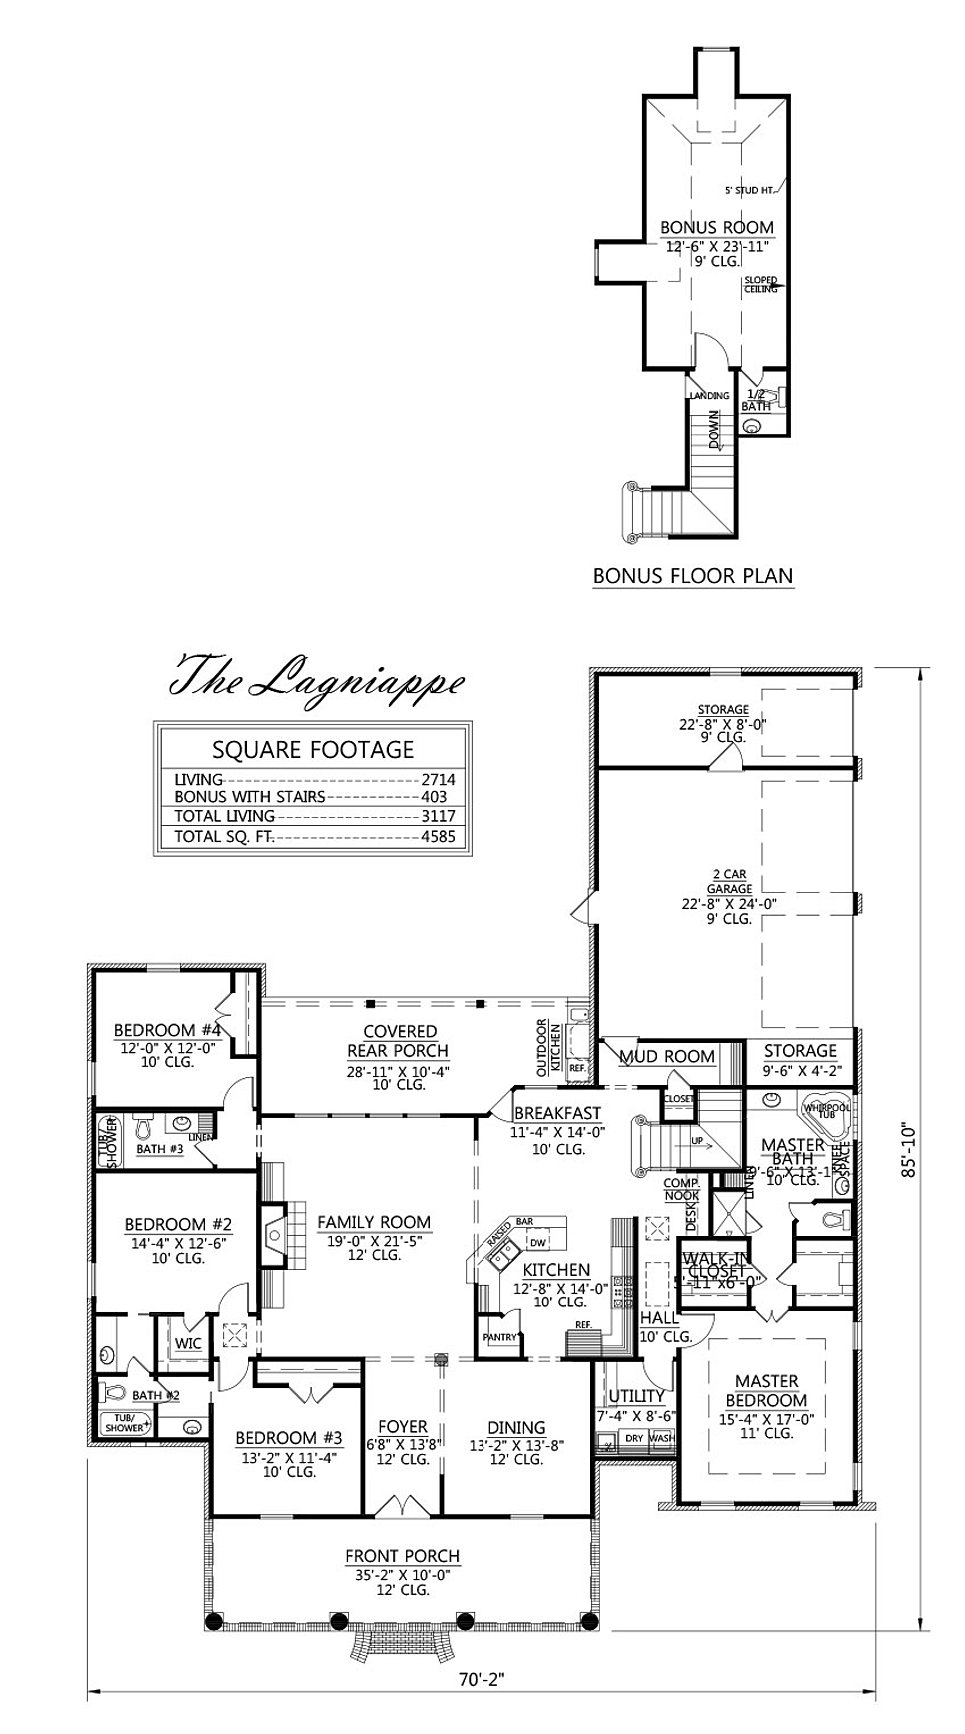 madden home design - the lagniappe